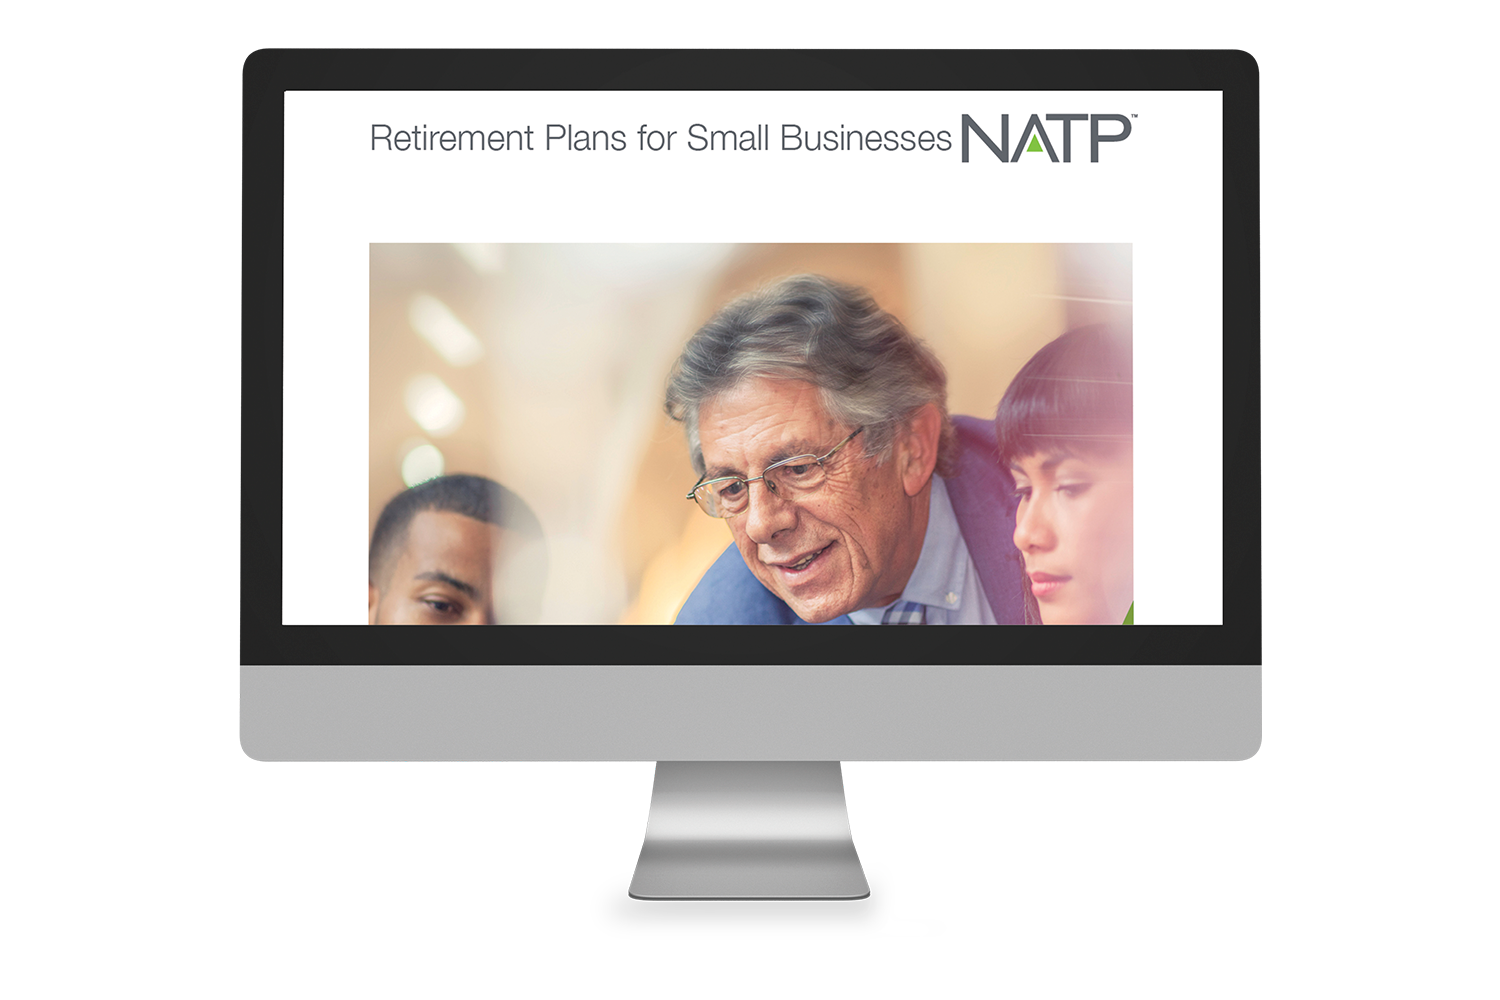 Retirement Plans for Small Businesses Textbook (2018) – Electronic PDF Version - #E3859